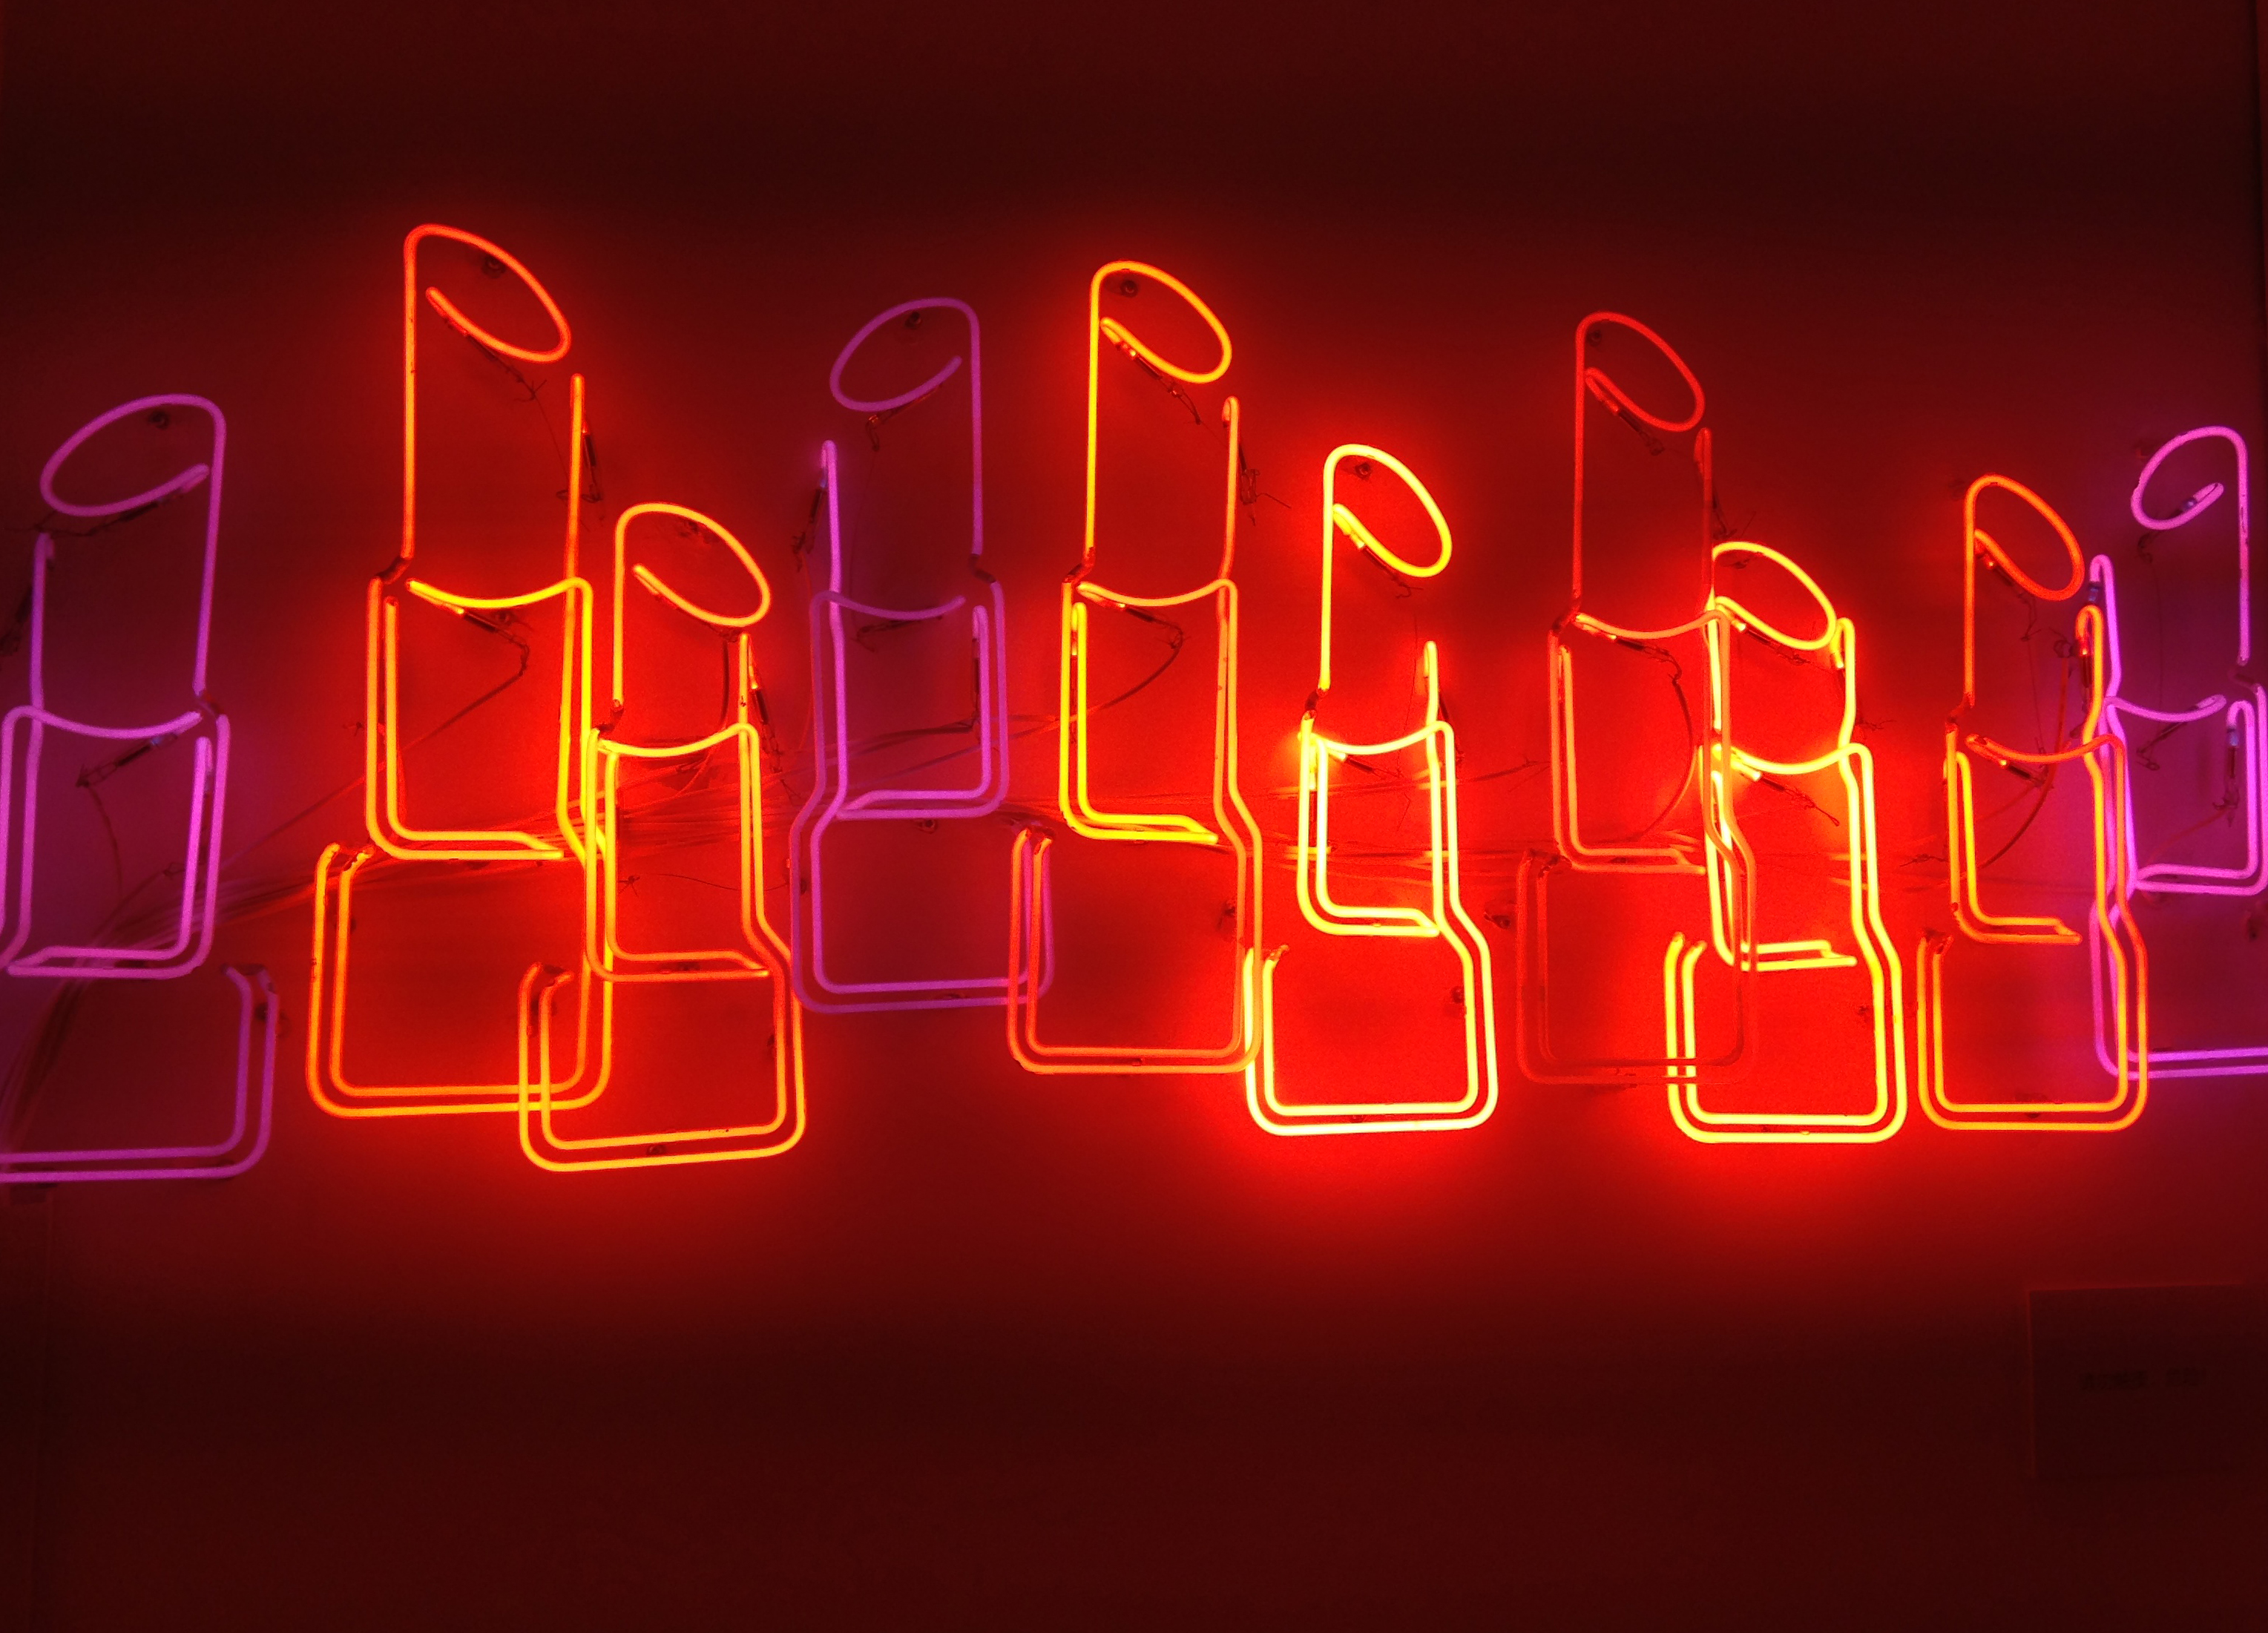 Lipstick Shaped Neon Lights